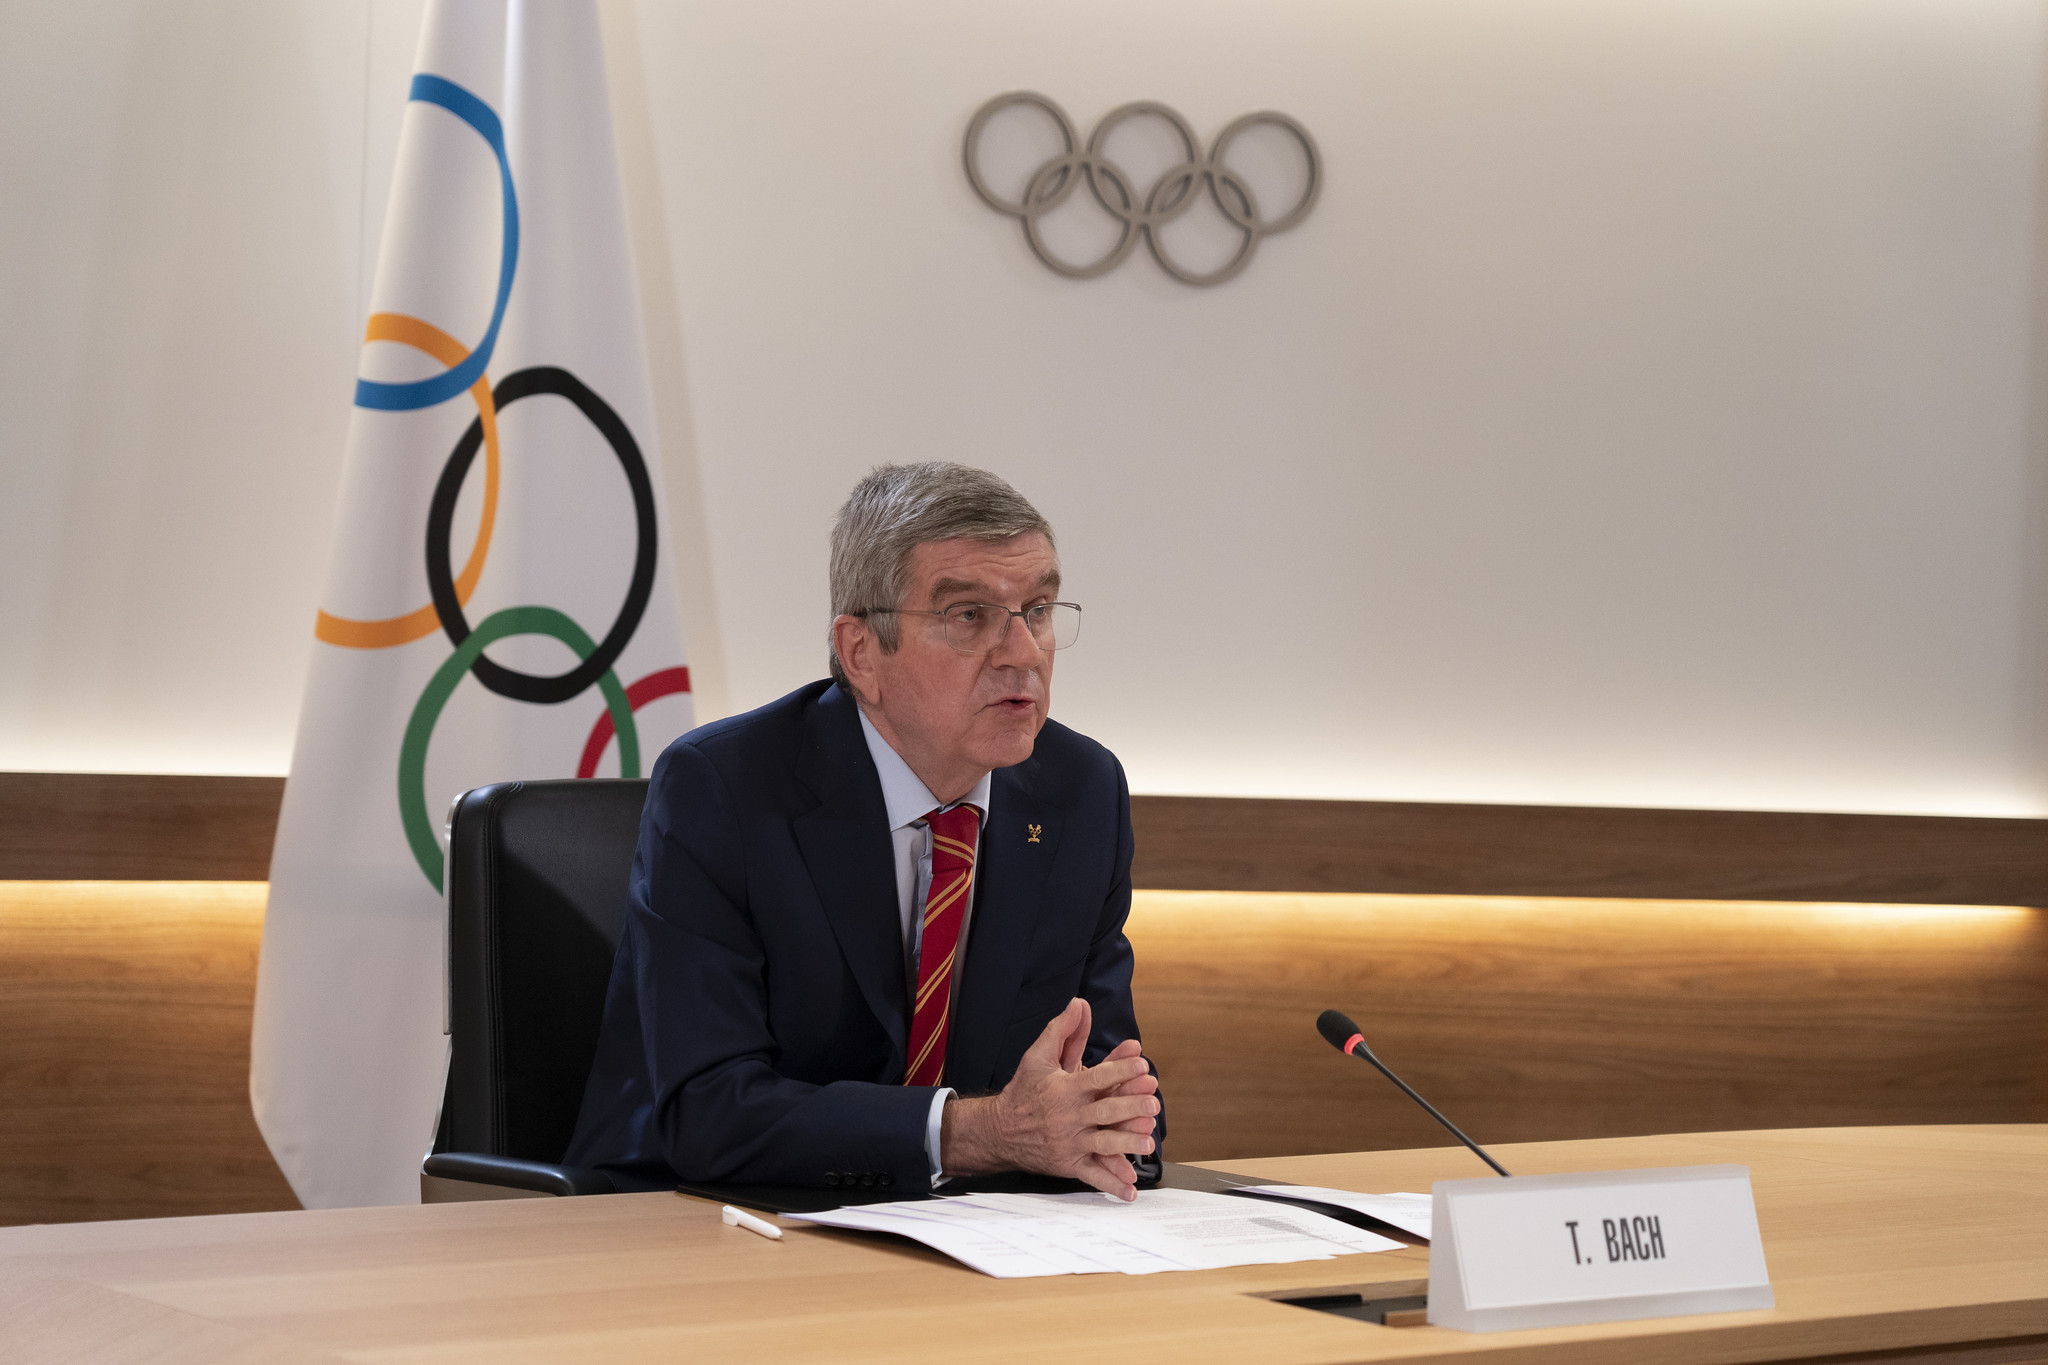 IOC President Thomas Bach implicitly criticised Sebastian Coe during his press conference yesterday ©IOC